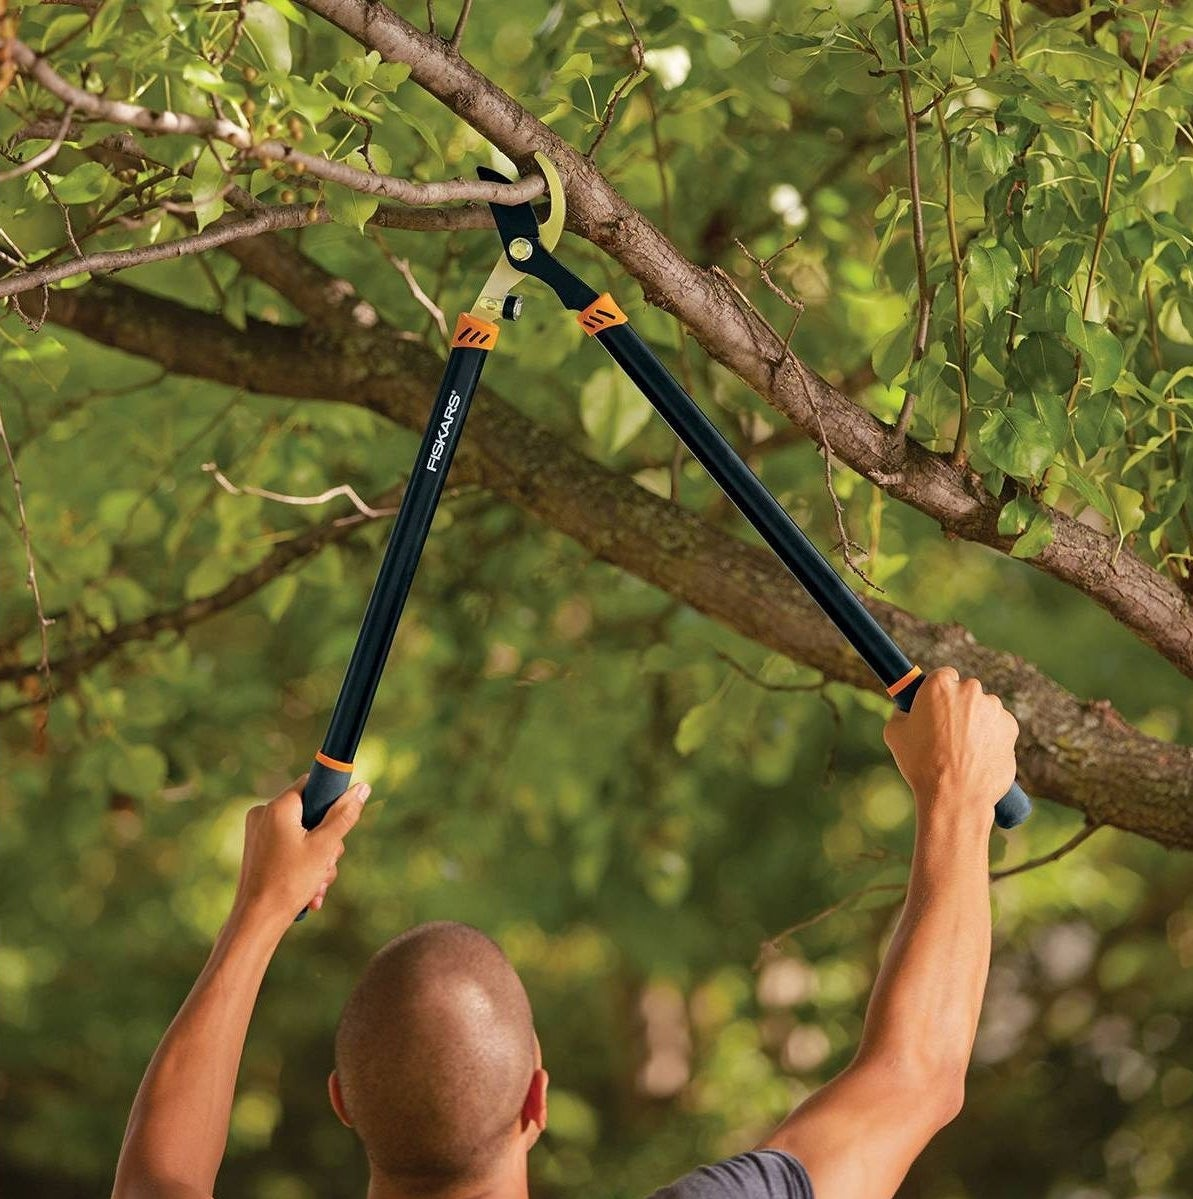 a man clipping branches with a brand trimmer